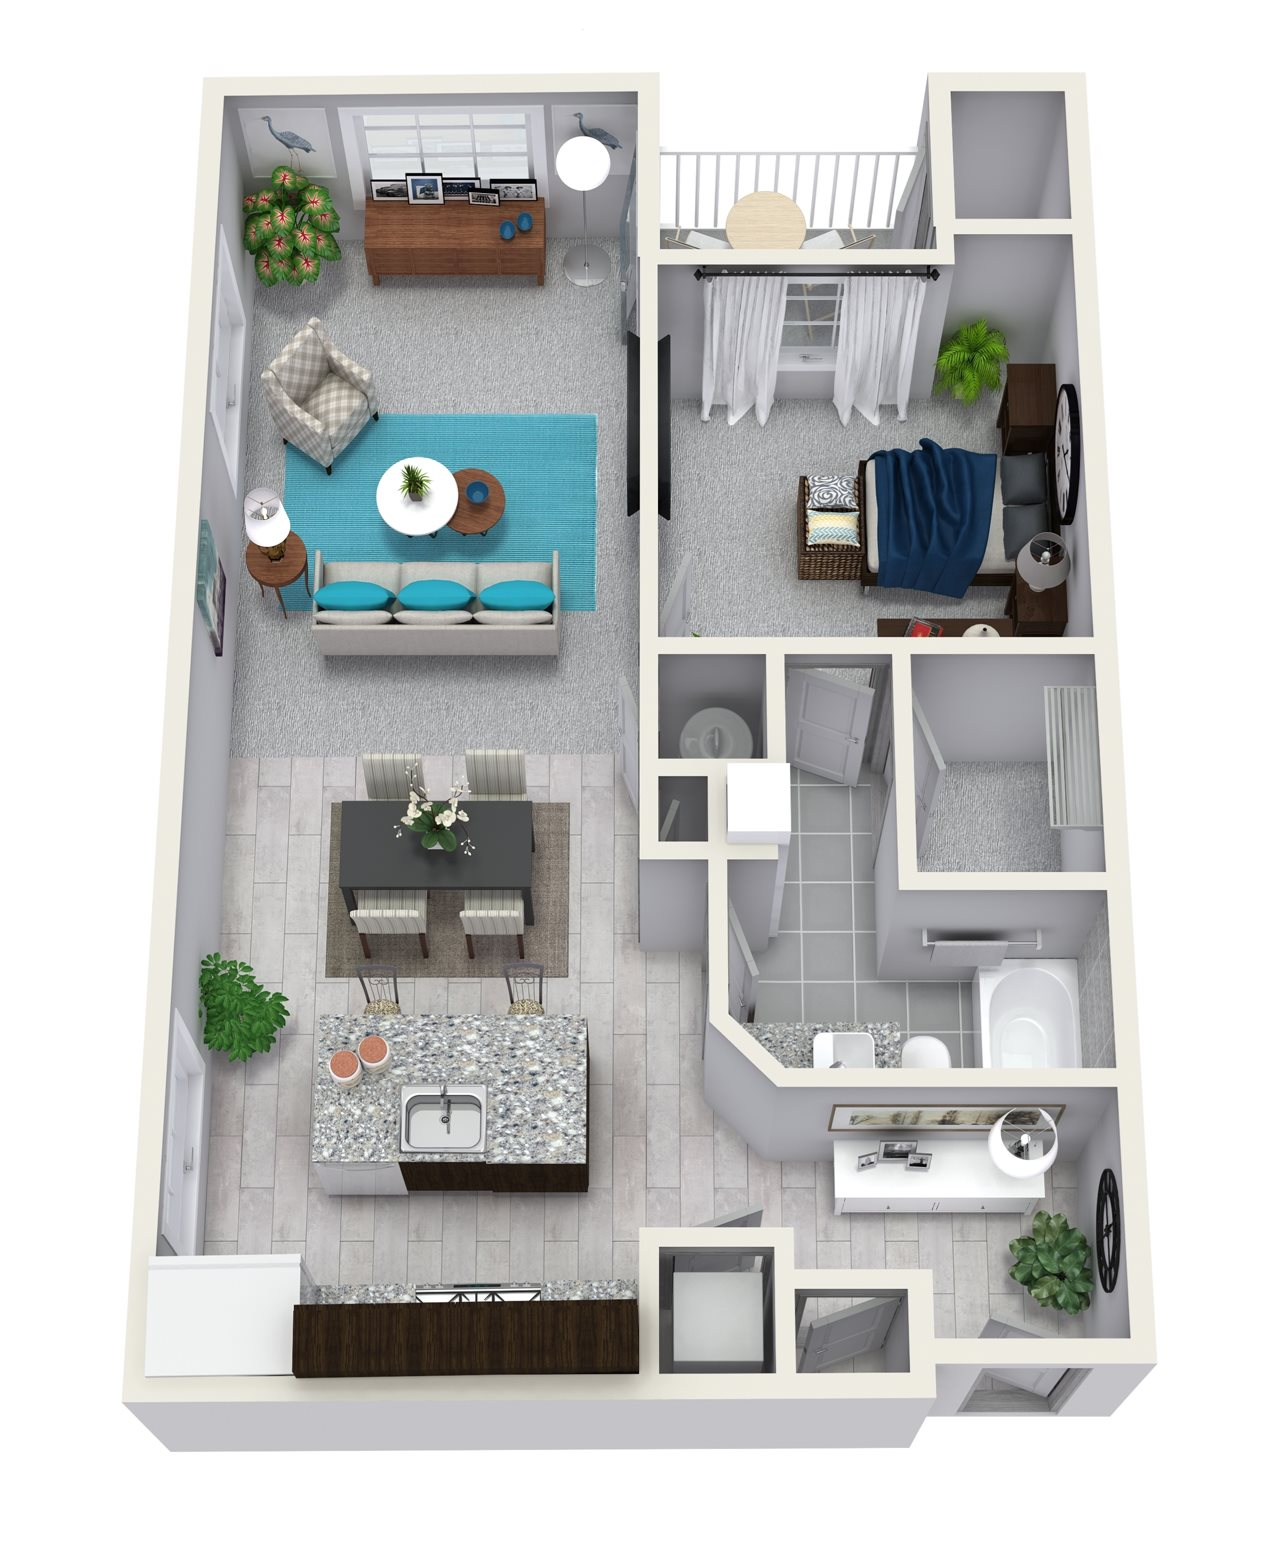 1 Bedroom 1 Bath 838 sqft A1 Floor Plan 1